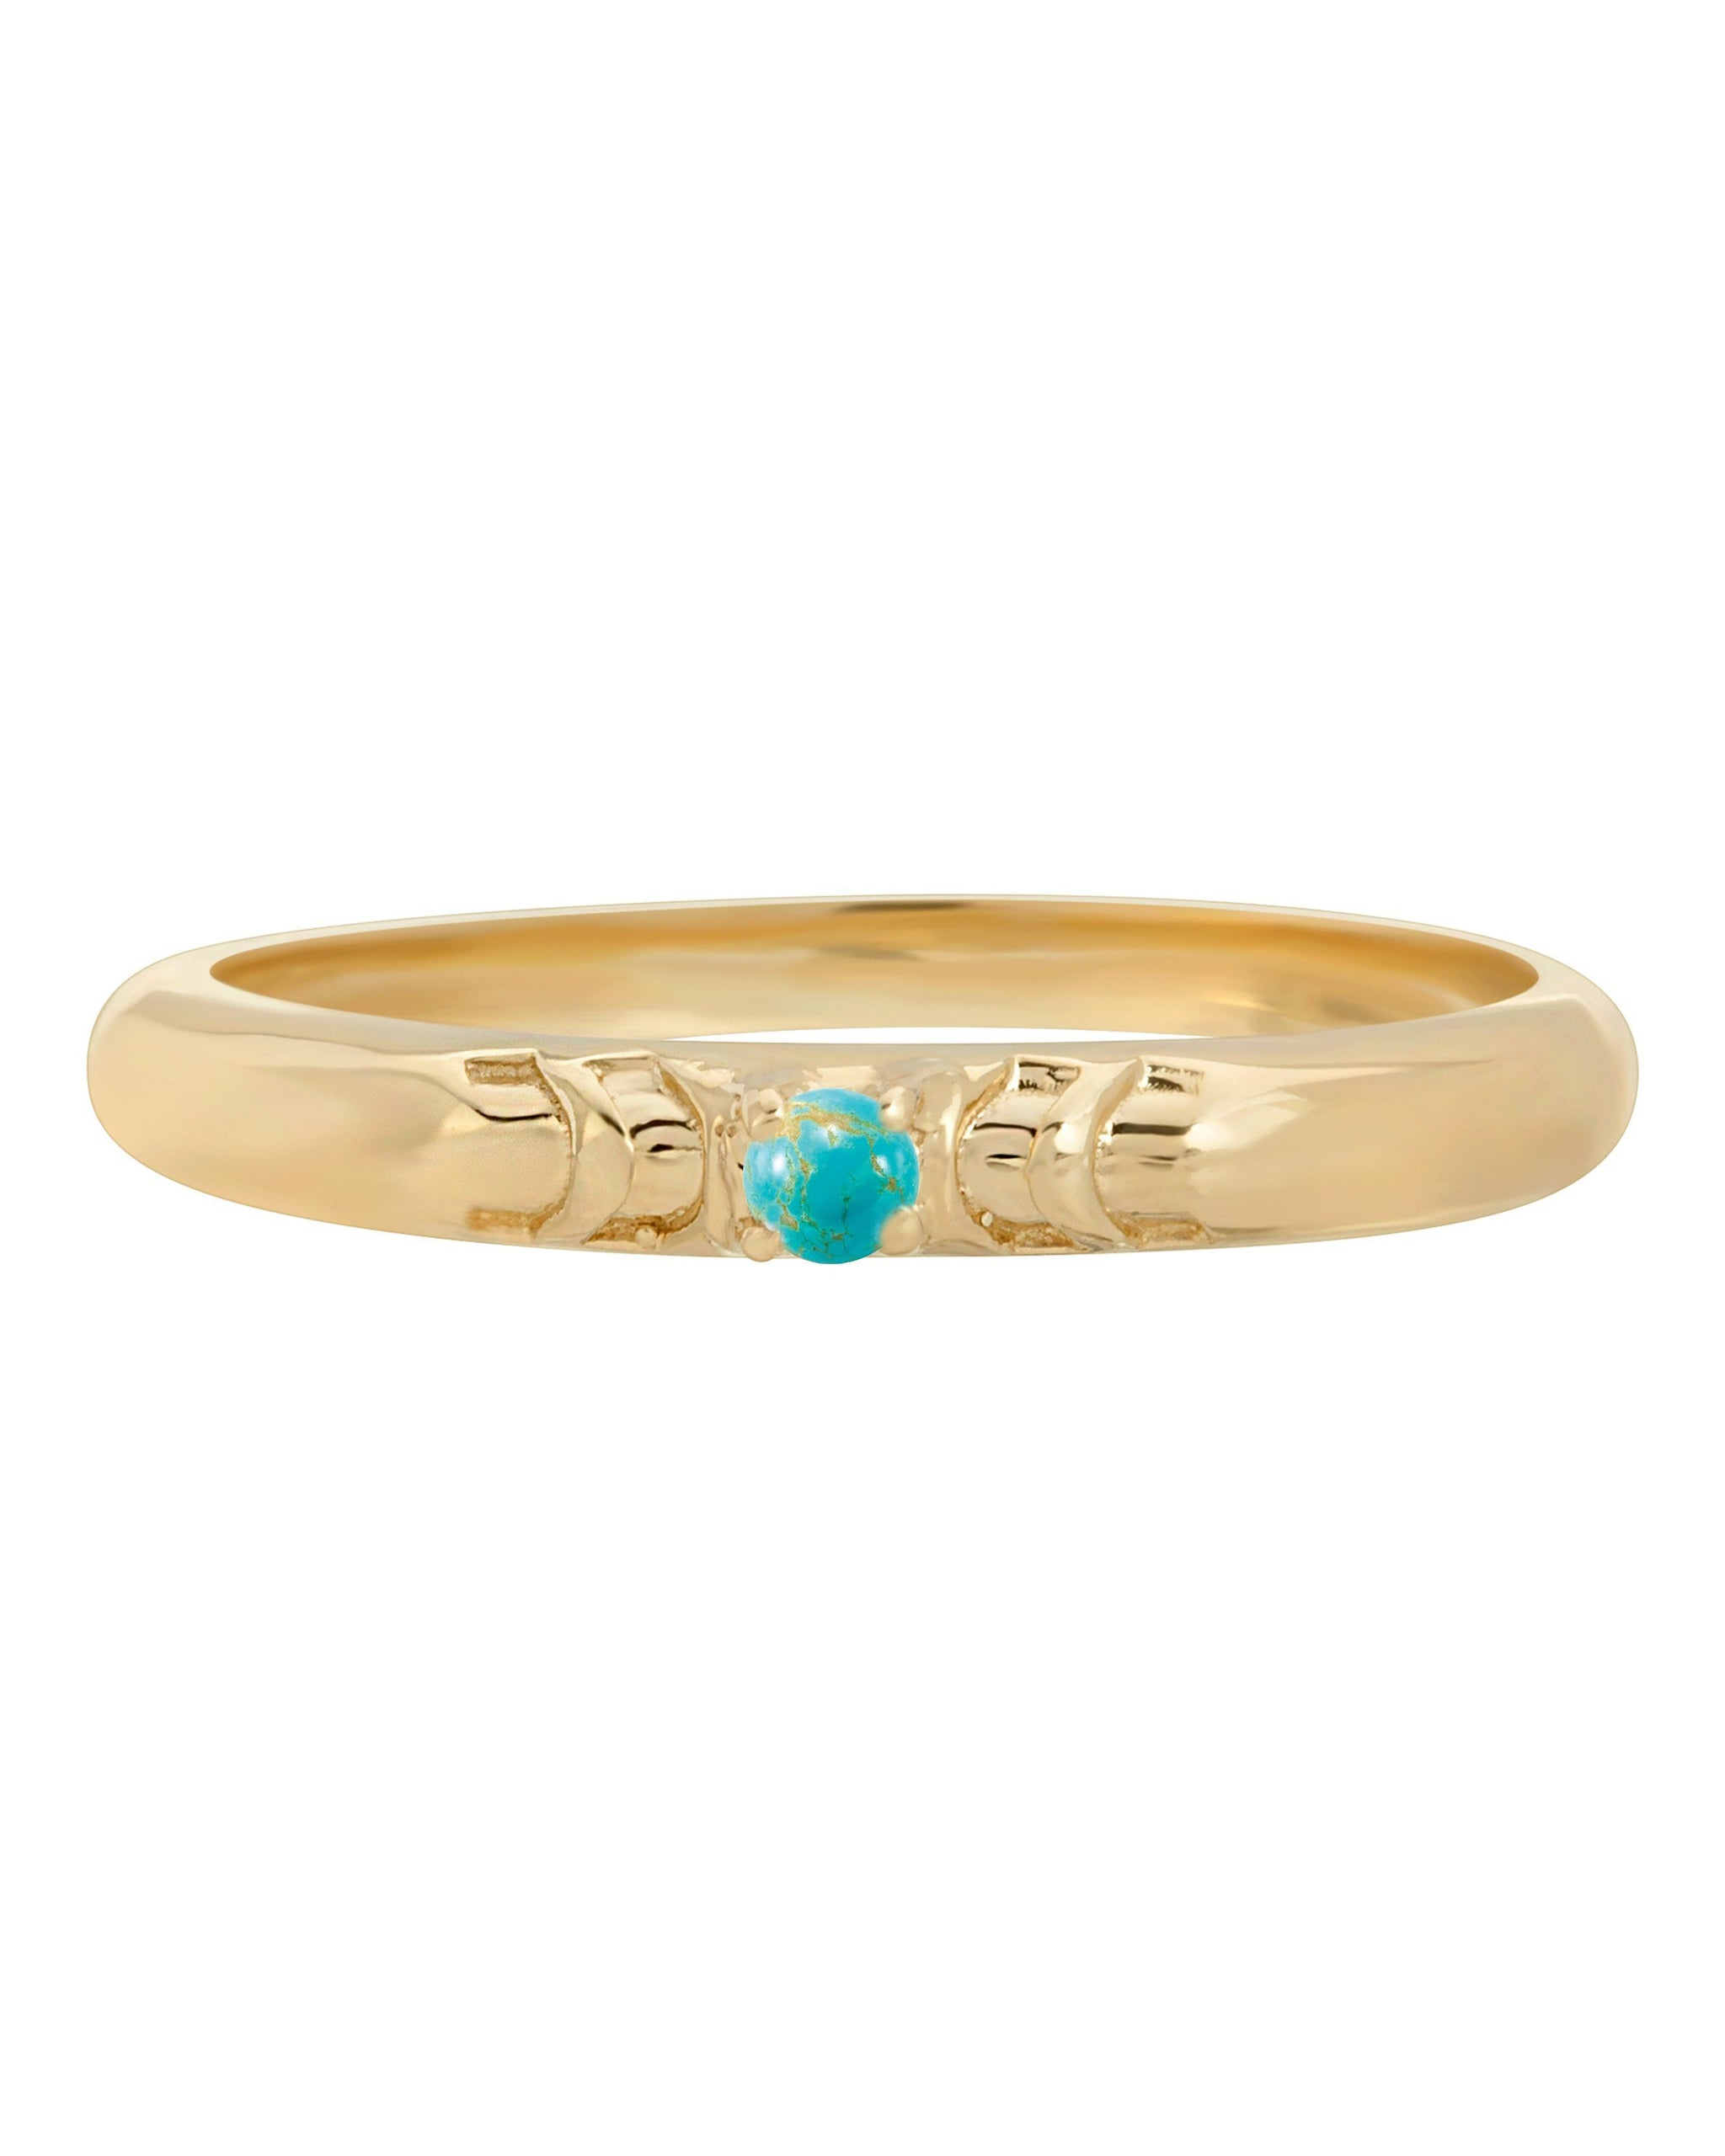 TURQUOISE ECLIPSE RING - TURQUOISE + TOBACCO